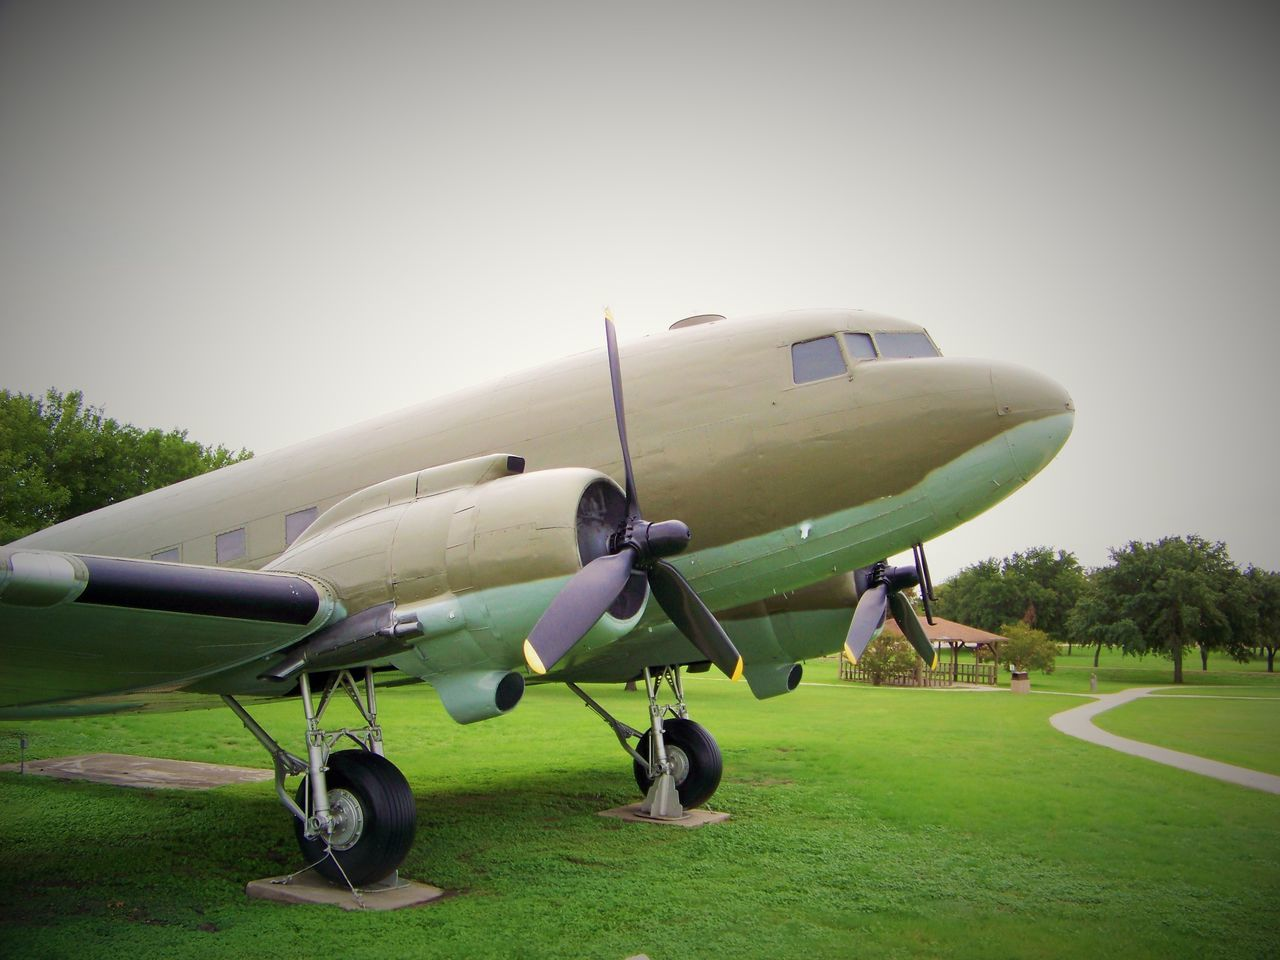 Airplane Aviation Day DC-3 Grass Historycal Aircraft No People Outdoors Plane Propeller Plane